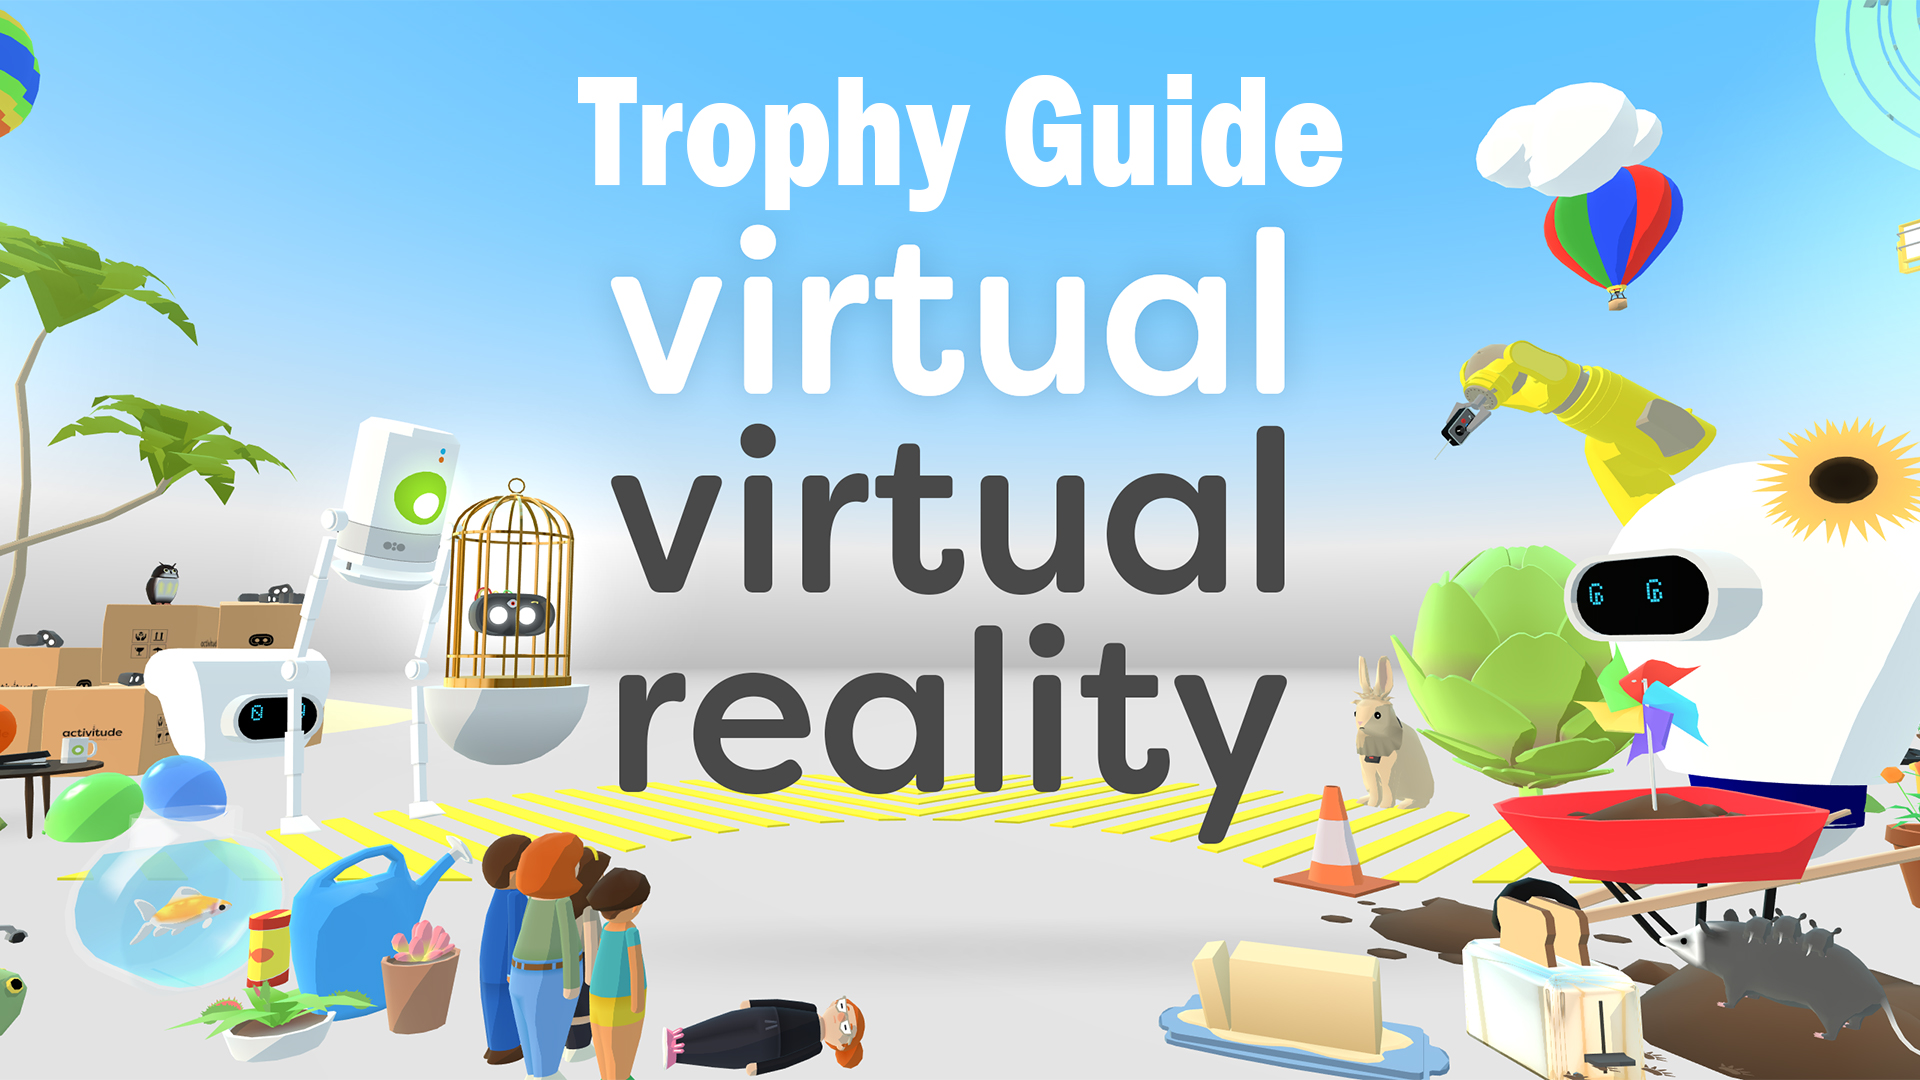 Virtual Virtual Reality Trophy Guide